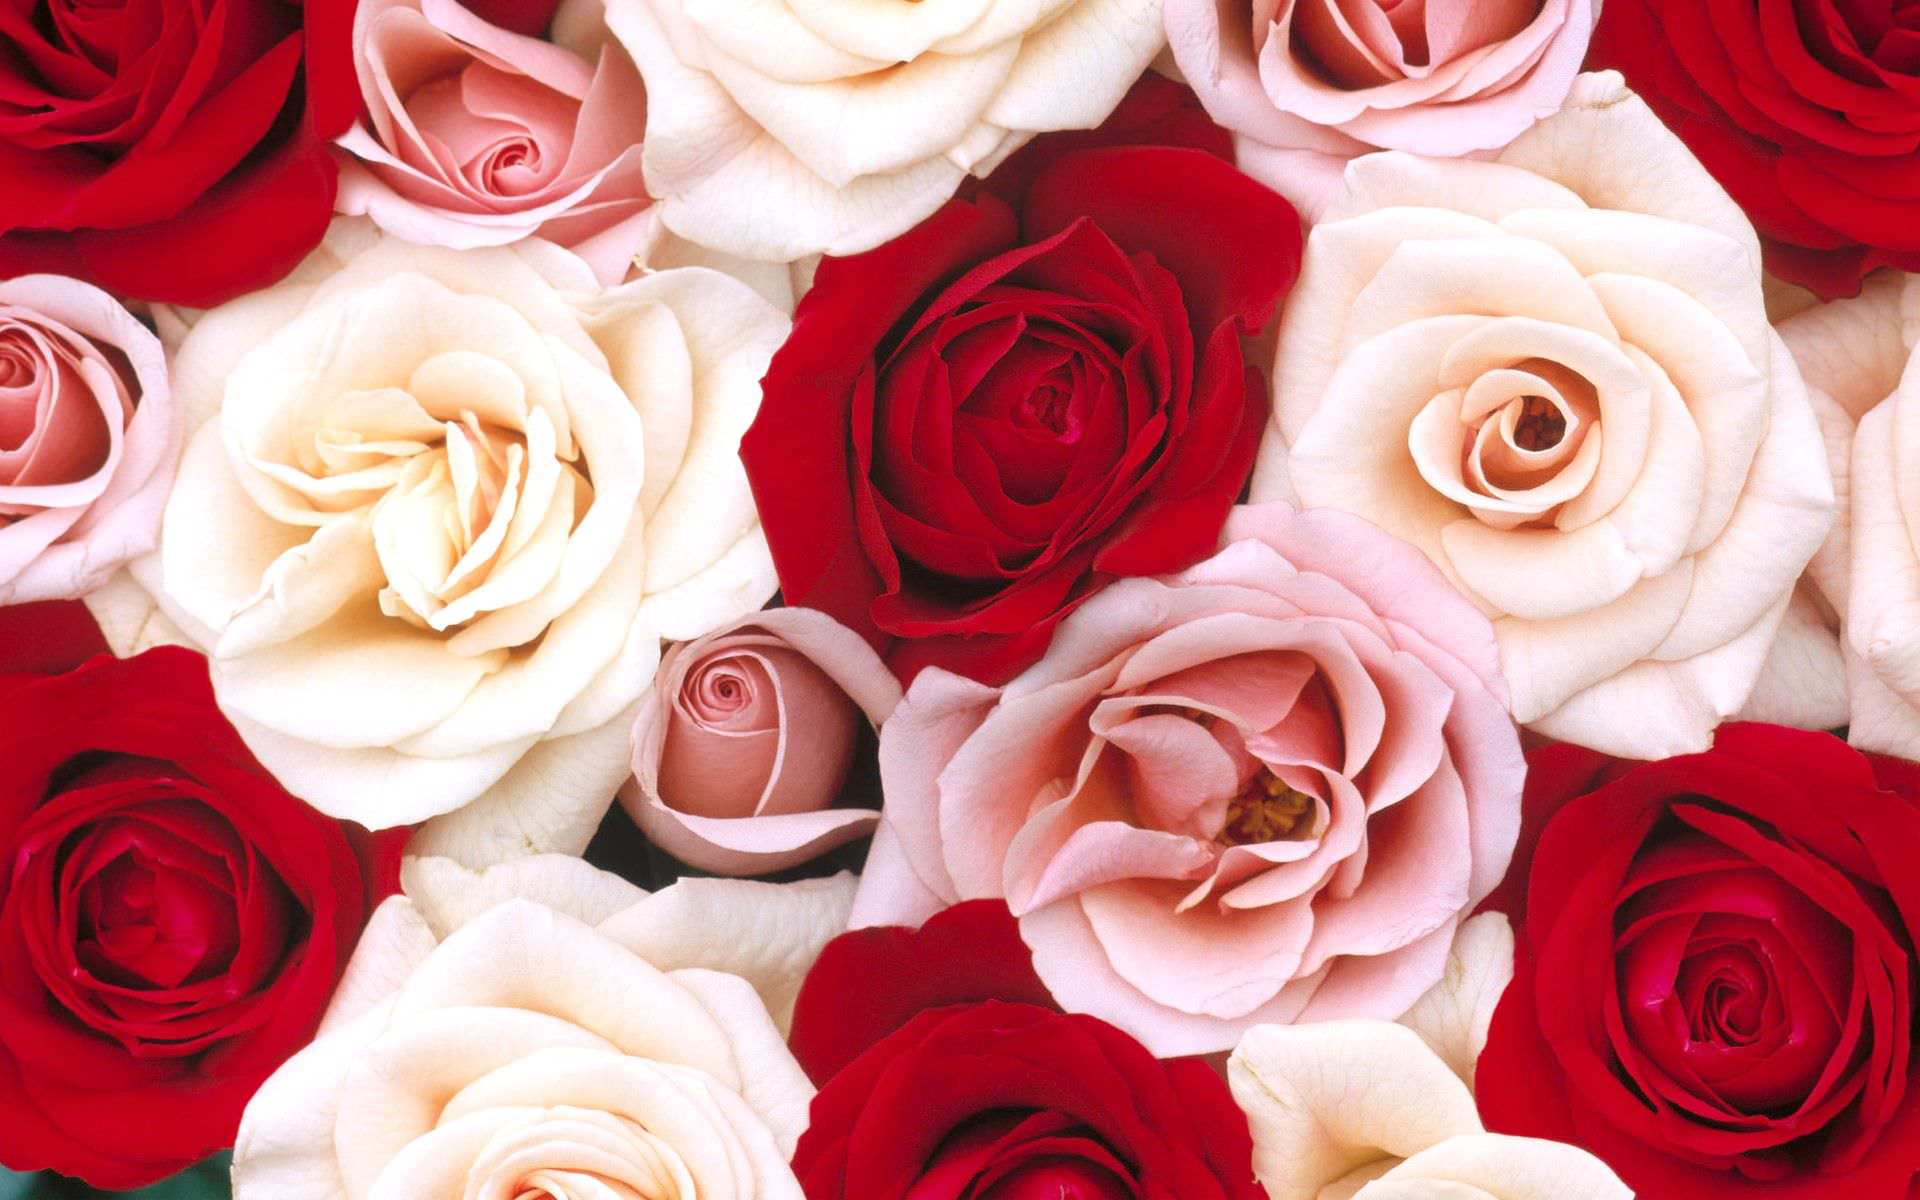 Live Roses Wallpaper Design